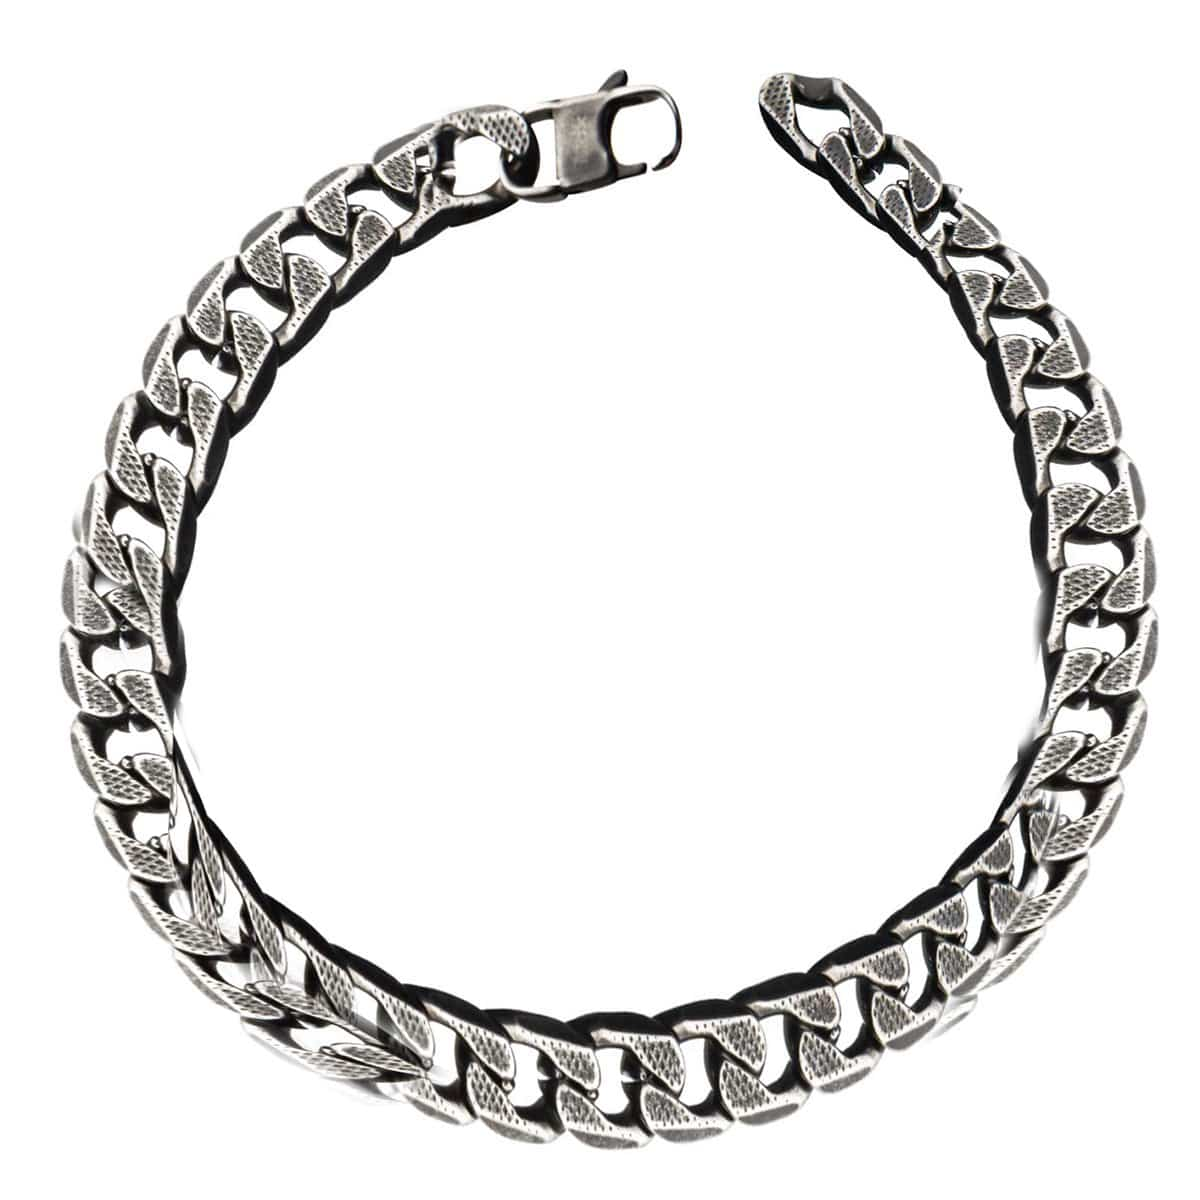 Silver Stainless Steel Oxidized Finish 11mm Curb Chain Bracelet